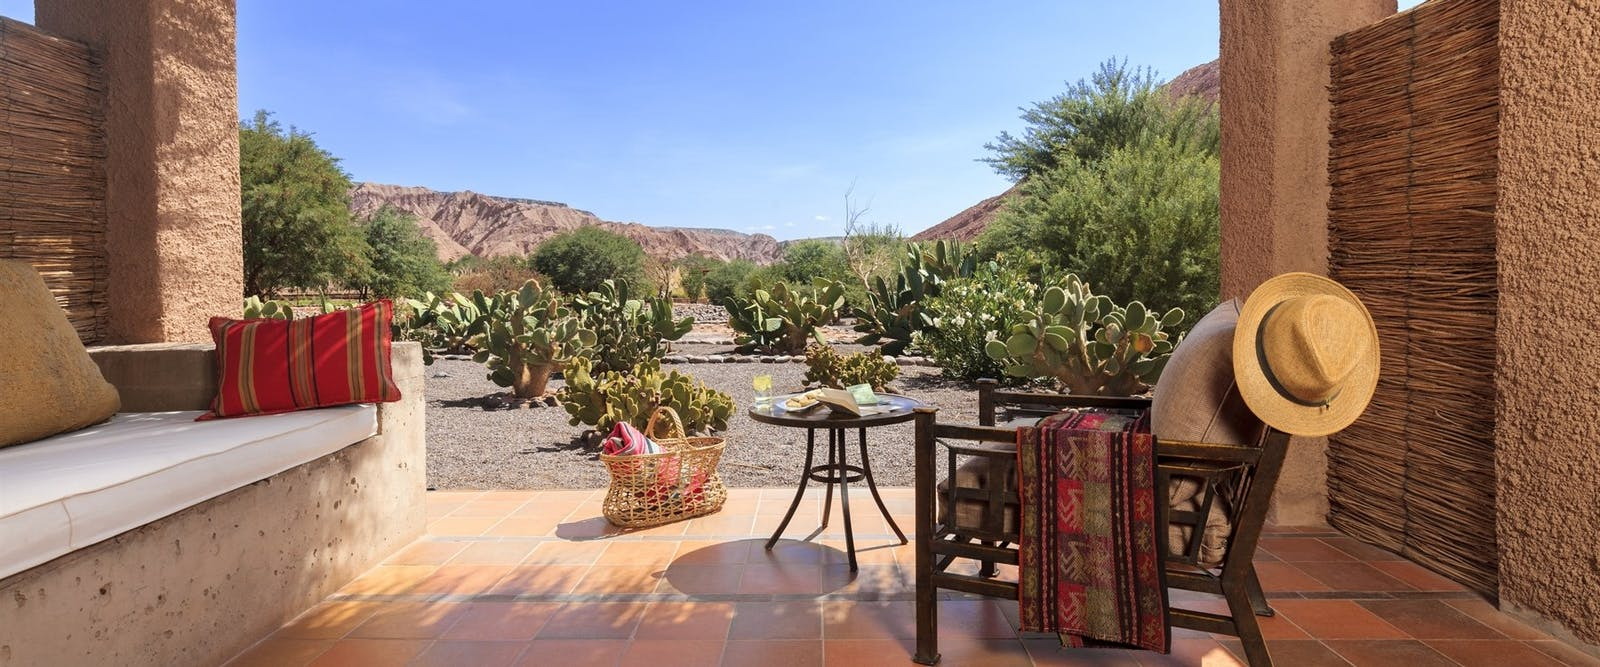 private terrace at alto atacama, Chile